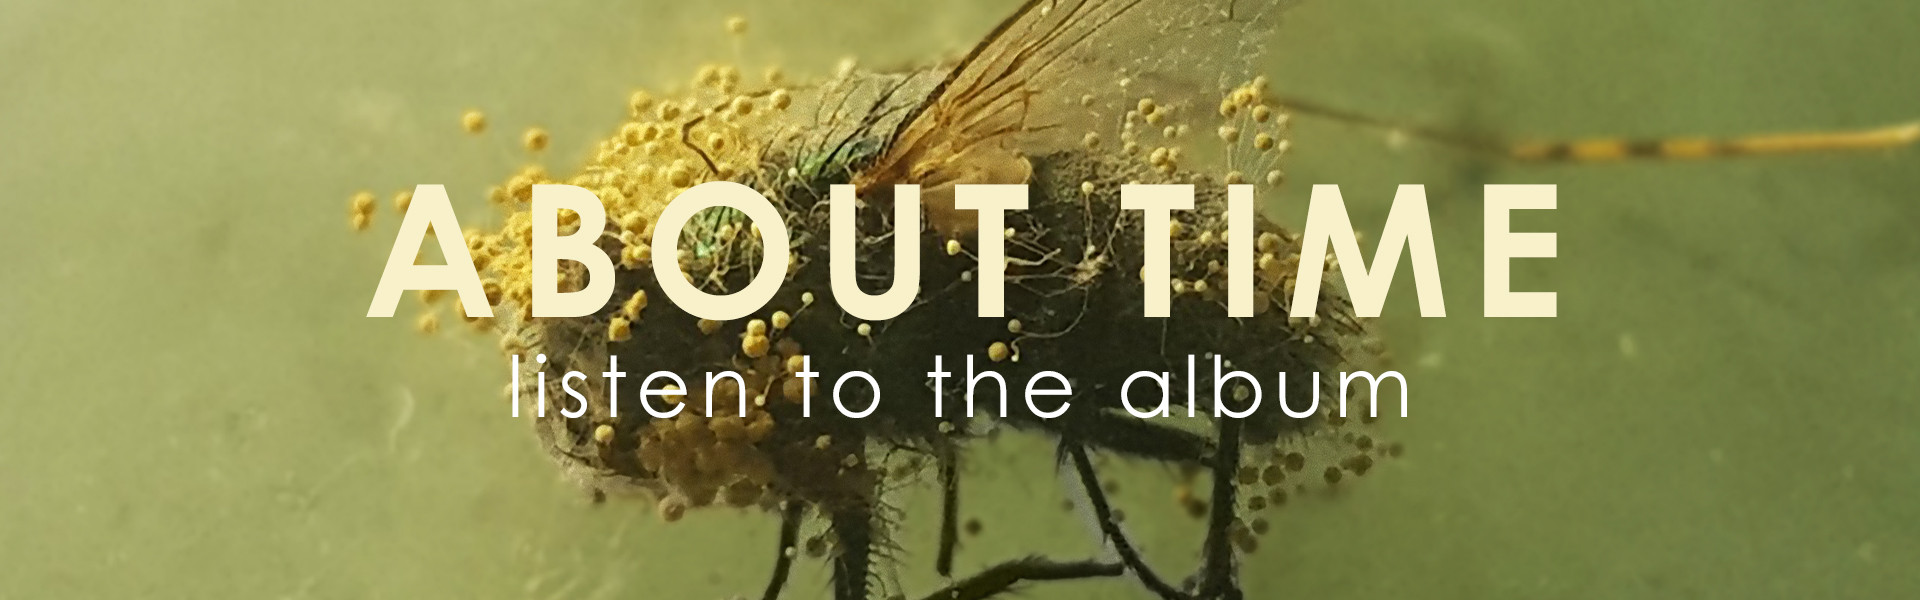 about time album button.jpg